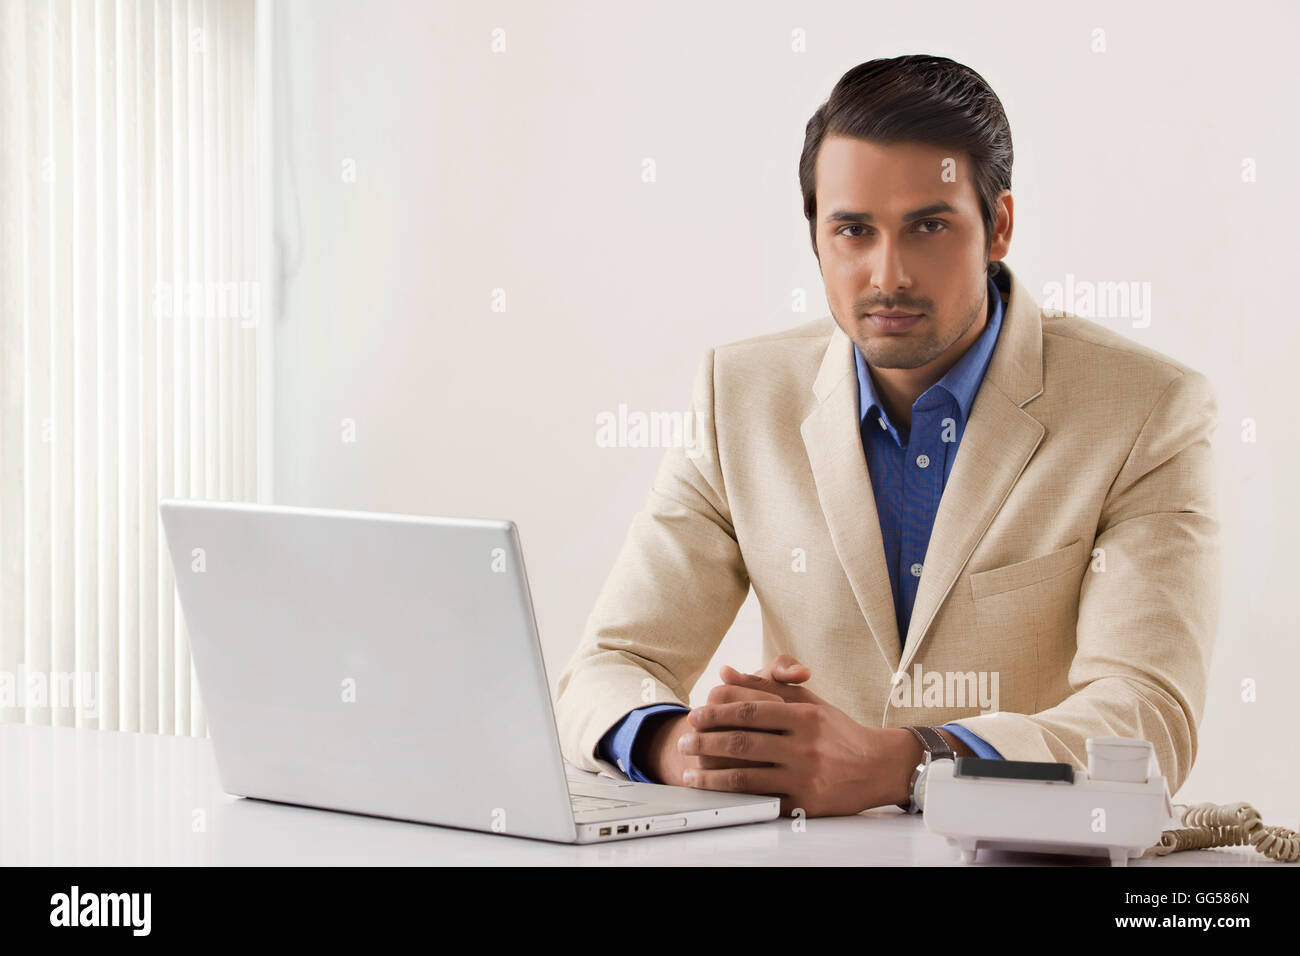 Portrait of confident businessman with laptop and landline at office desk - Stock Image